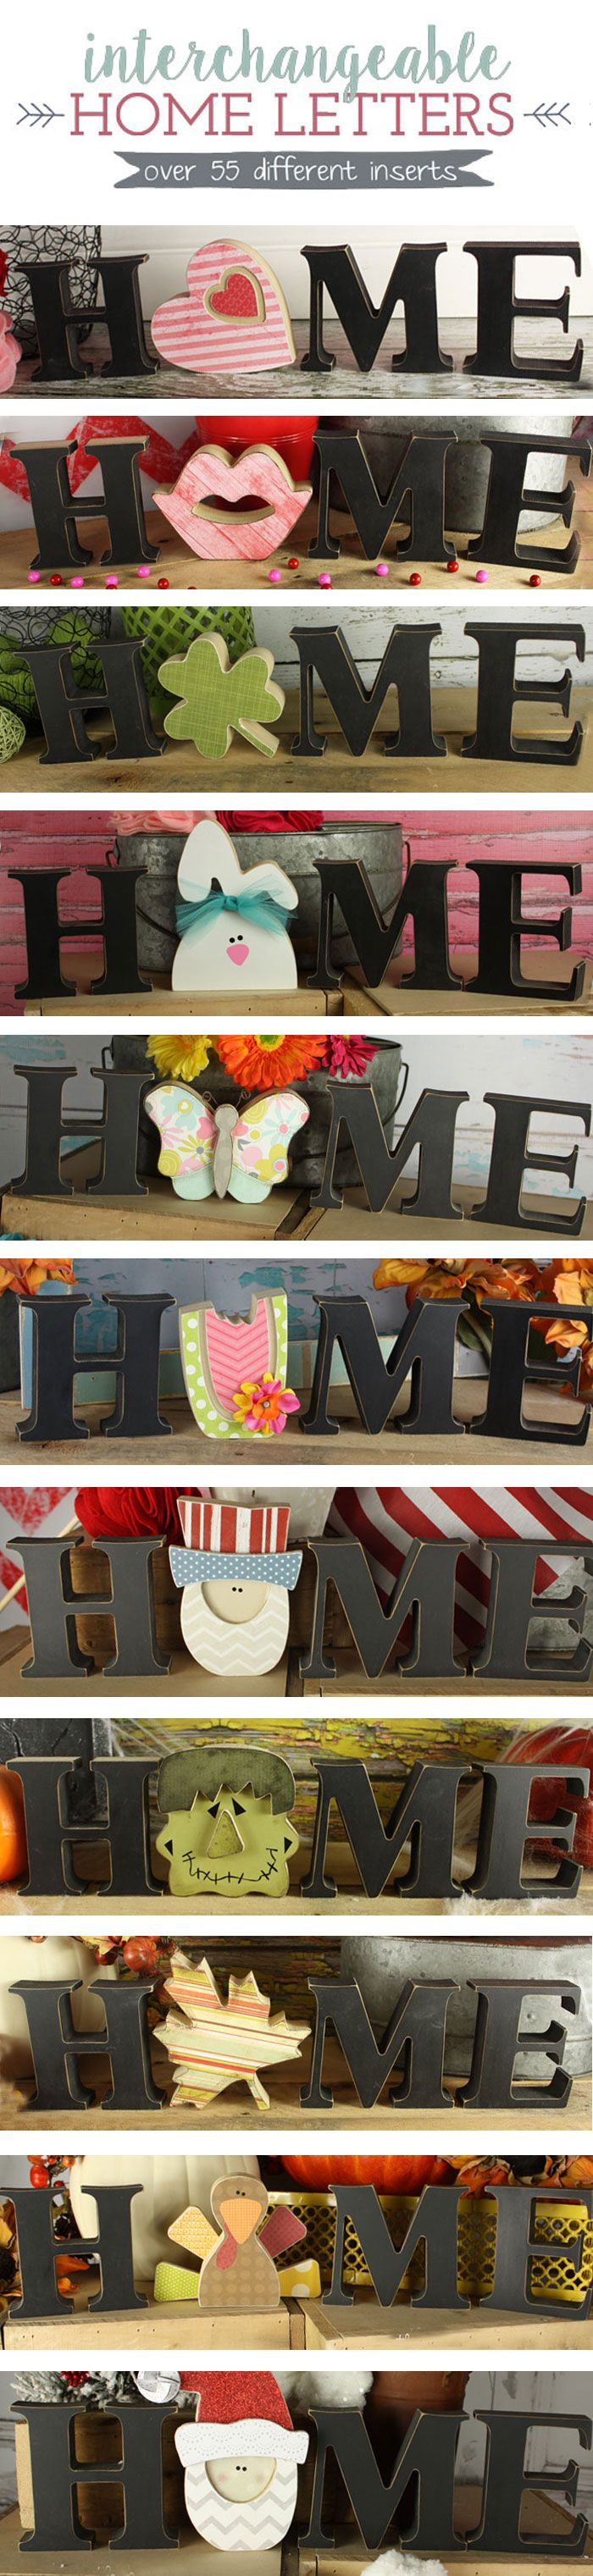 Interchangeable Home Letters. Over 55 different inserts for the ...